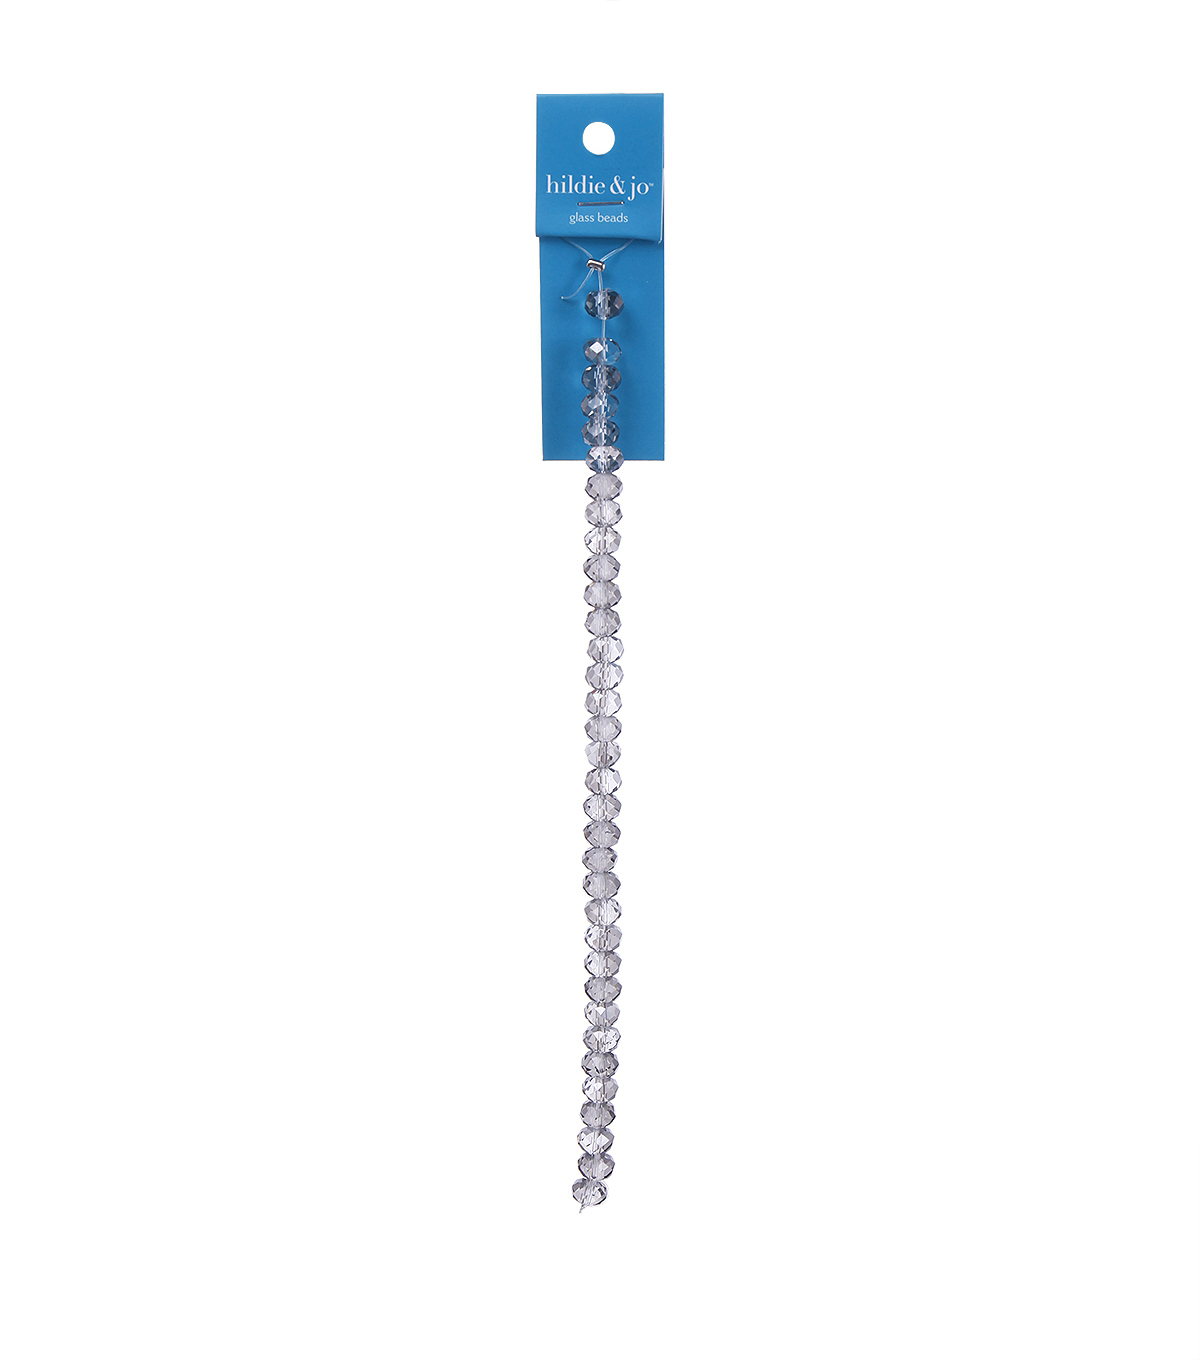 Blue Moon Strung Machine Cut Crystal Beads,Rondelle,Clear,Facetted